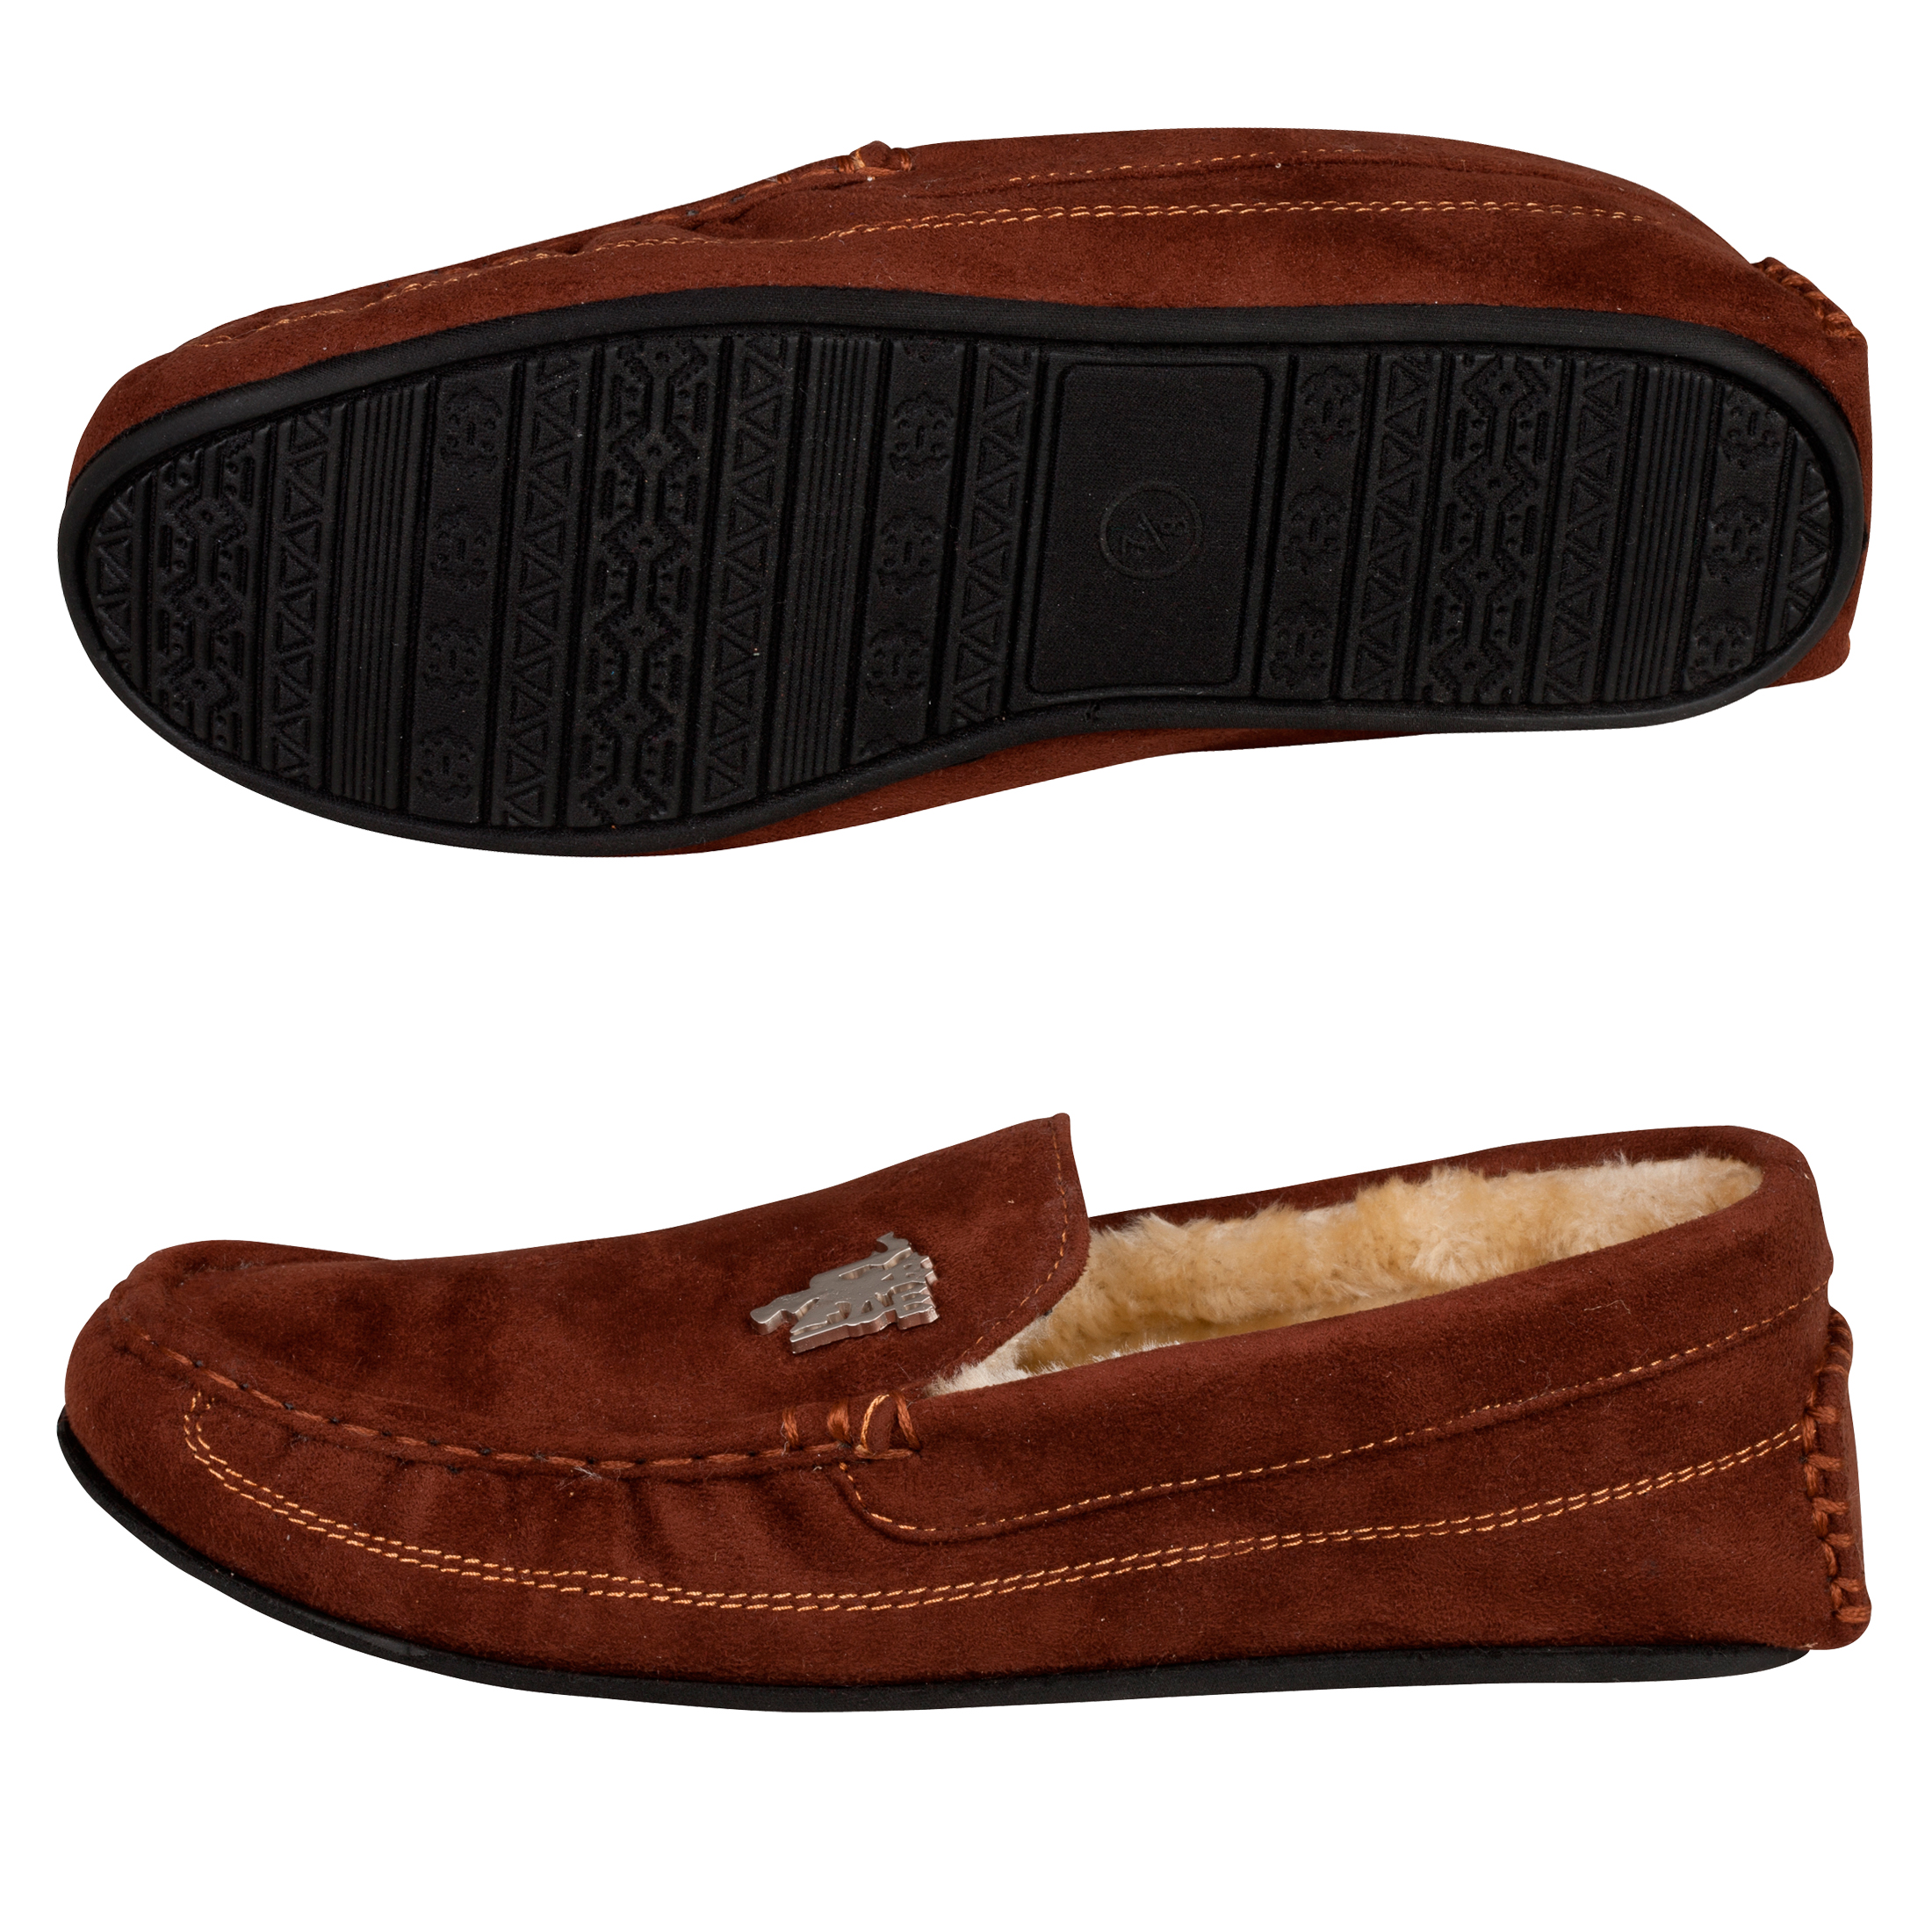 Manchester United Moccasin Slipper - Brown - Mens